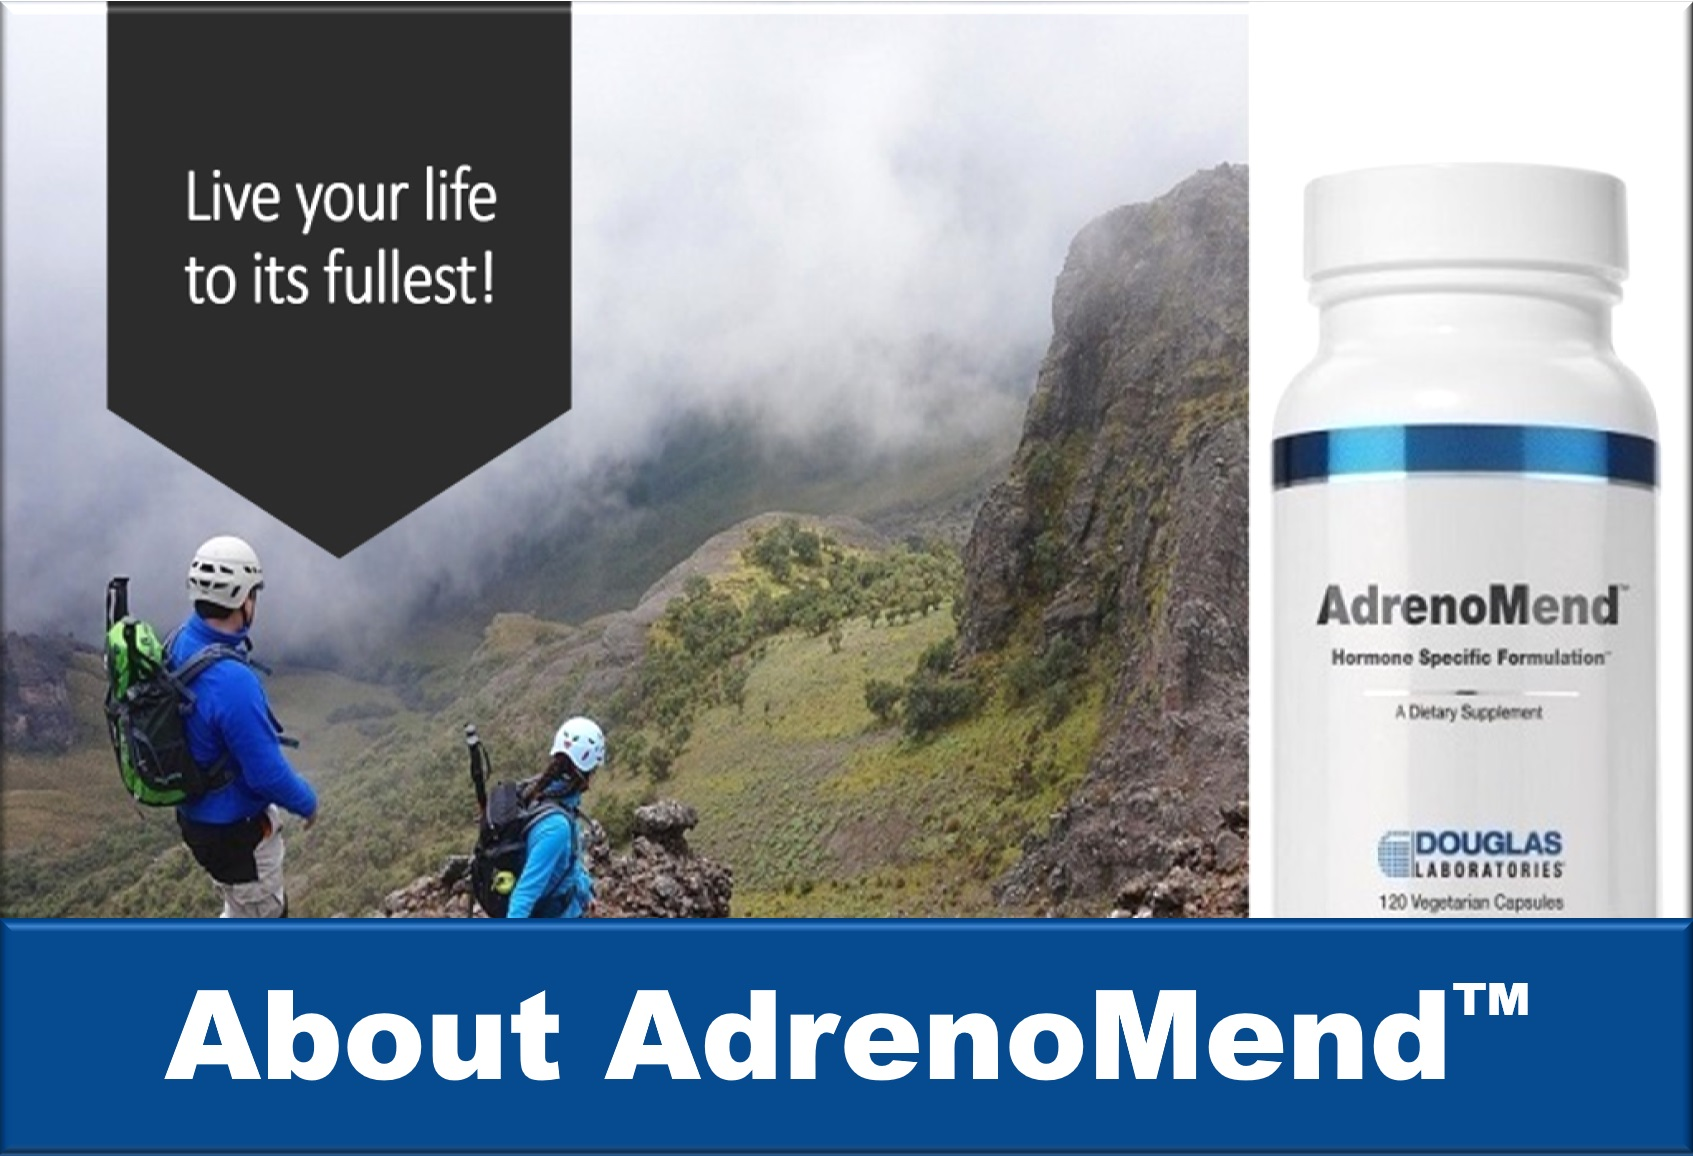 About AdrenoMend™